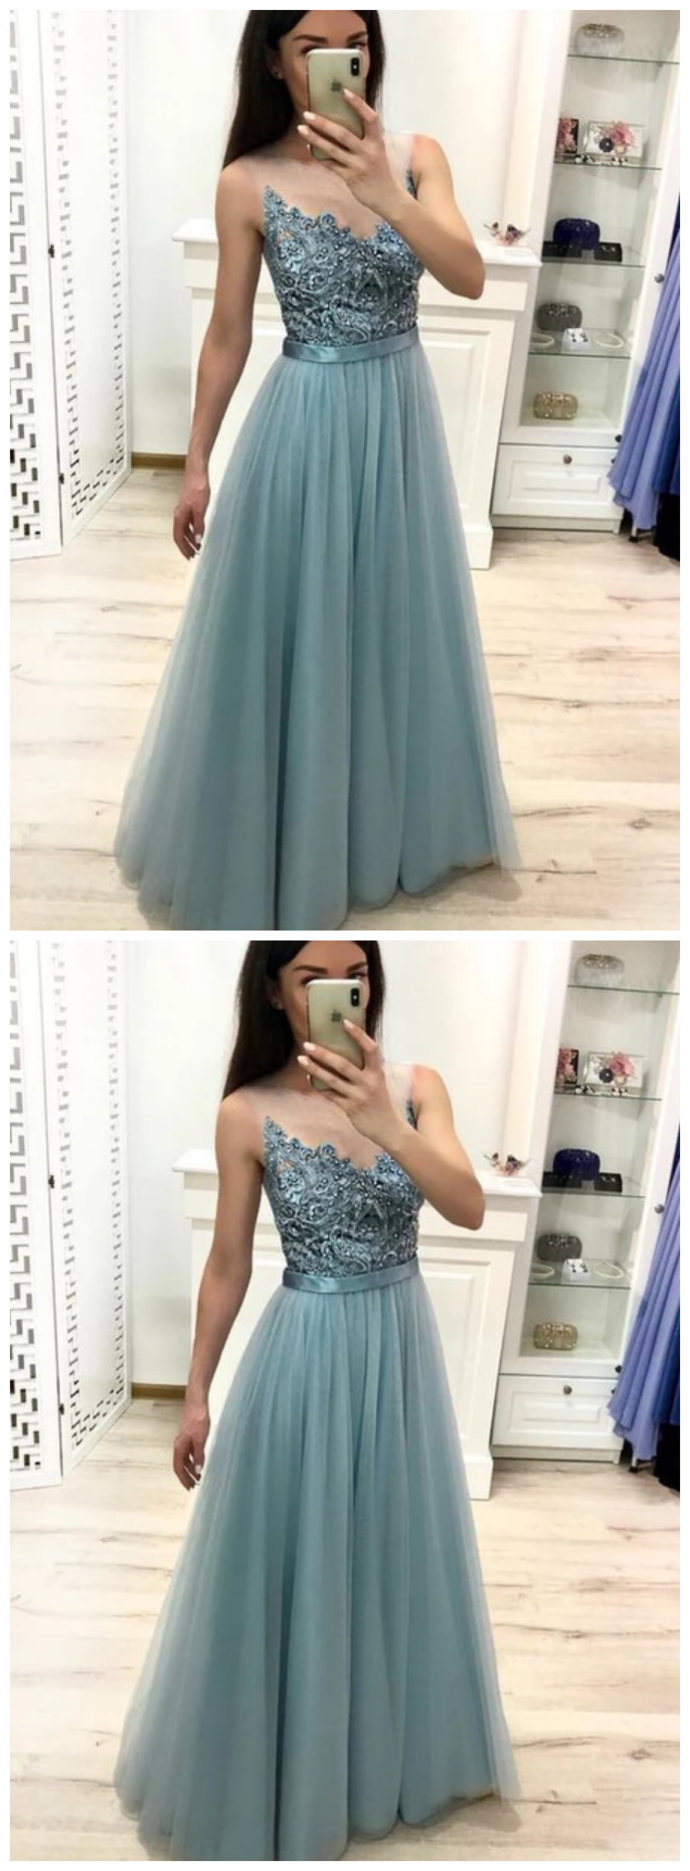 A Line Tulle Blue Floor Length Prom Dresses Beaded Long Evening Graduation